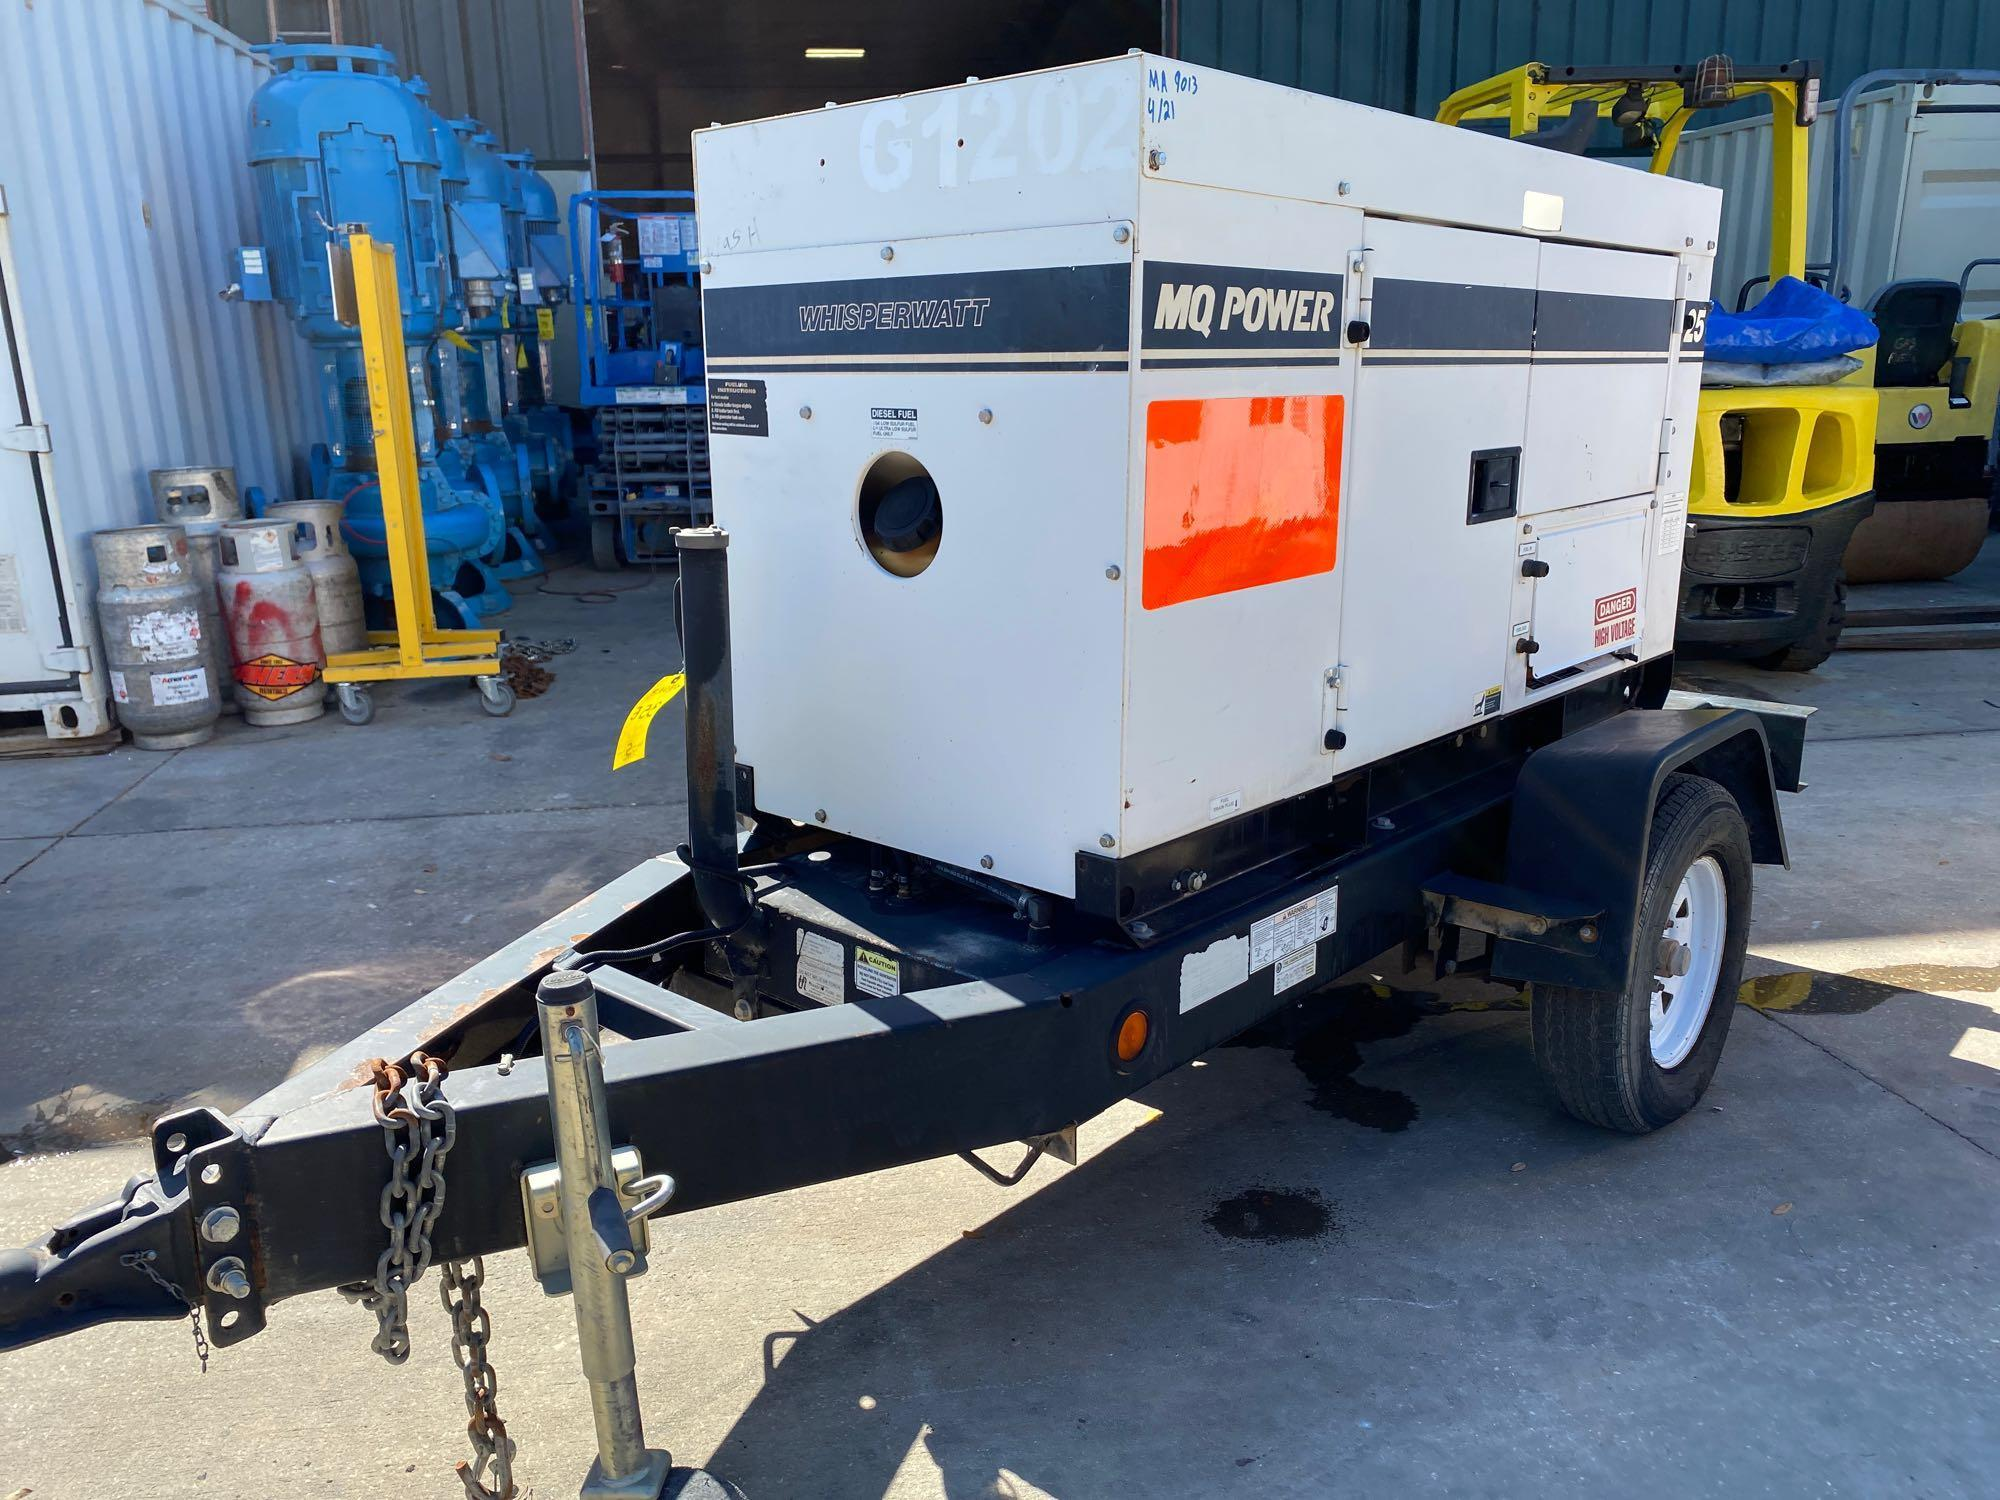 2011/2012 WHISPERWATT MQ POWER DIESEL GENERATOR, TRAILER MOUNTED, 20KW, 25KVA, RUNS AND OPERATES - Image 13 of 19